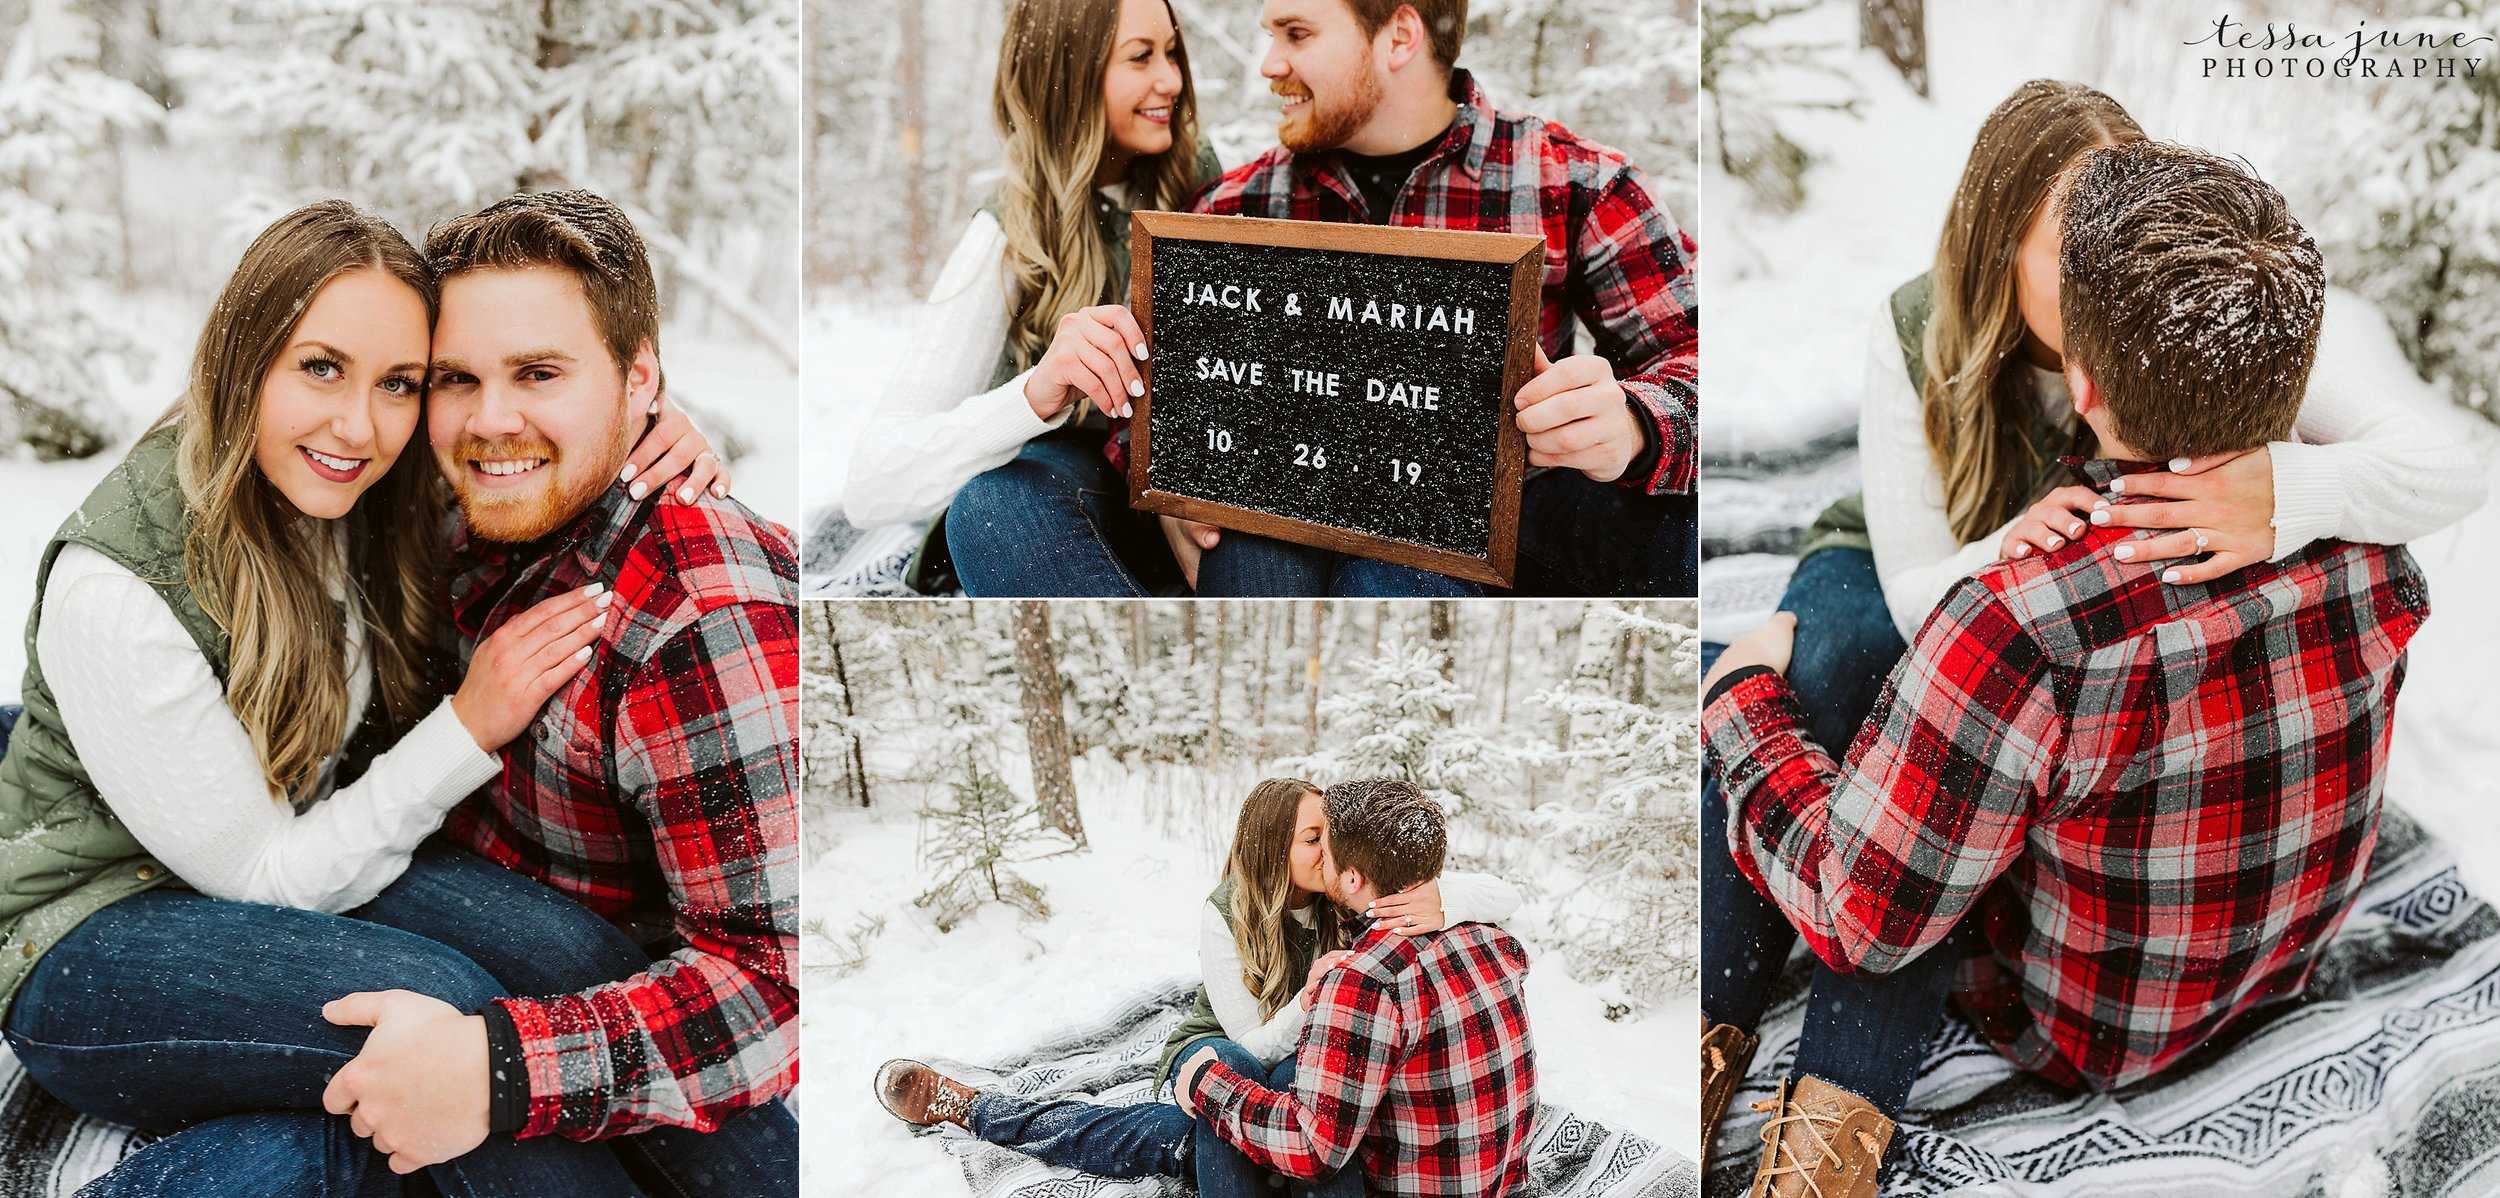 duluth-winter-engagement-forest-photos-during-snow-storm-24.jpg